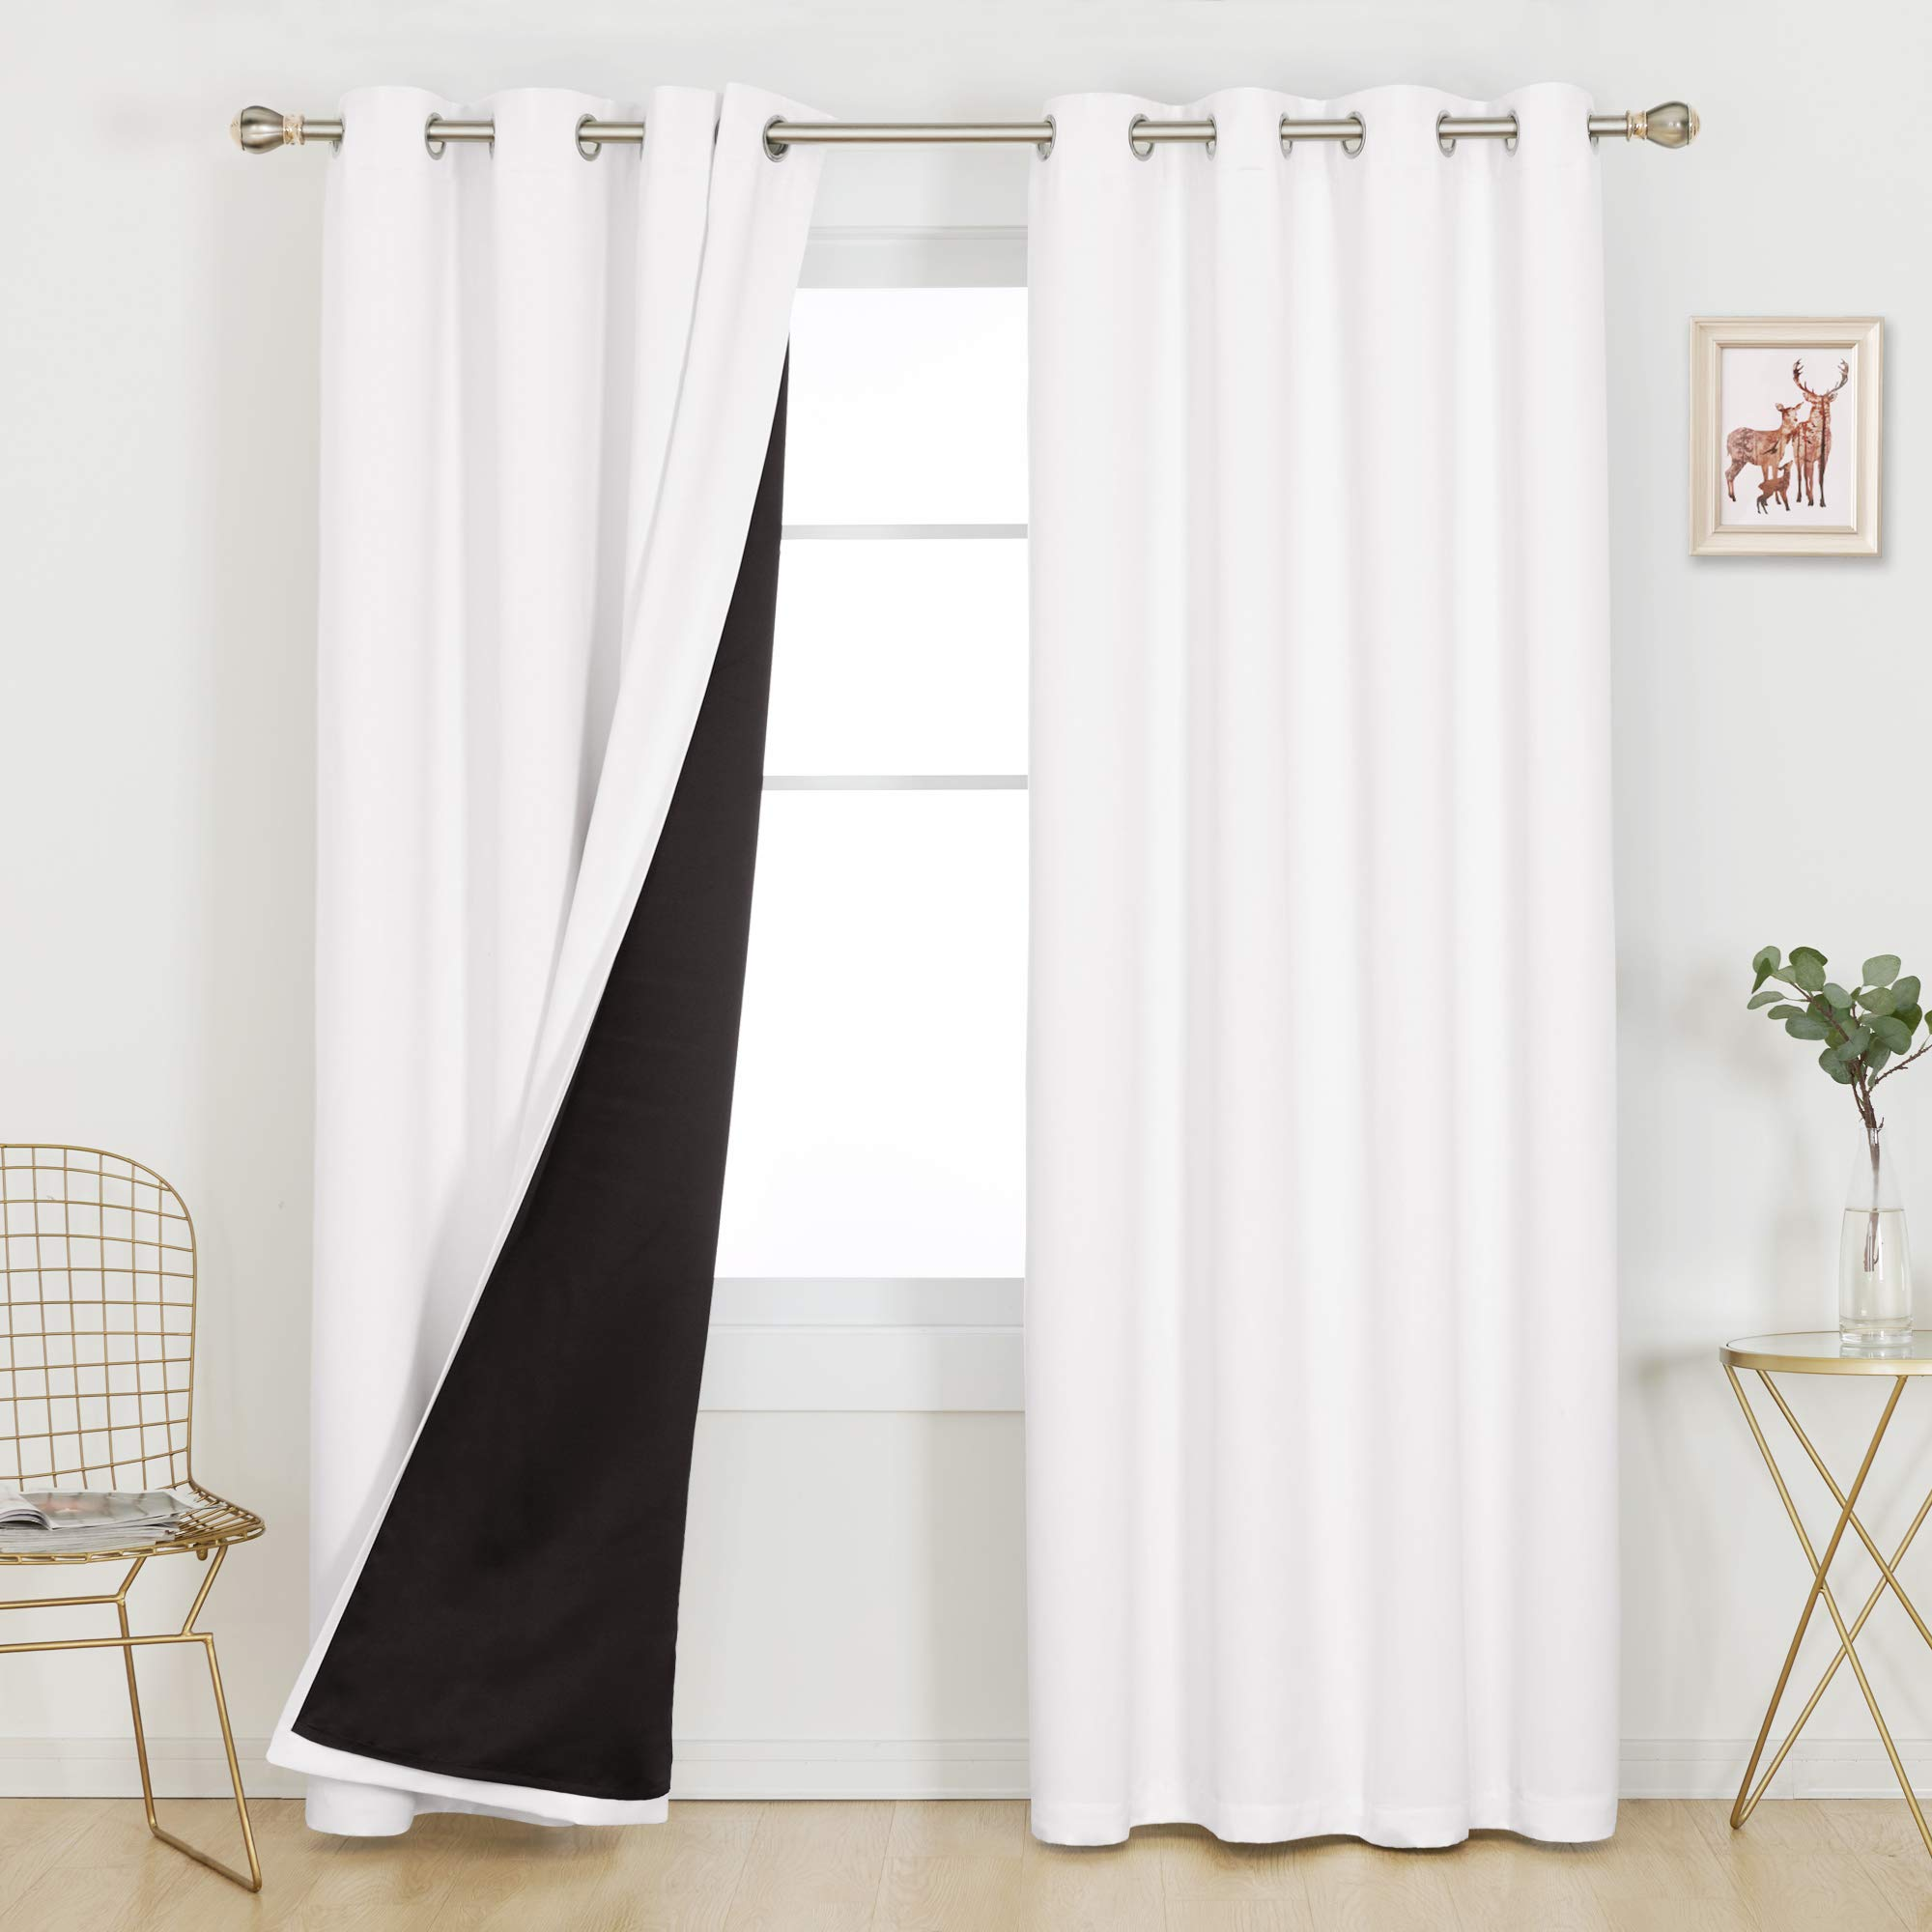 Deconovo Grommets 100% Blackout Curtains 95 Inches Long Length Thermal Insulated Window Drapes for Bedroom Kids Room Baby Boy Girl Nursery Long Windows, Set of 2, Each Panel 52x95 in, Pure White